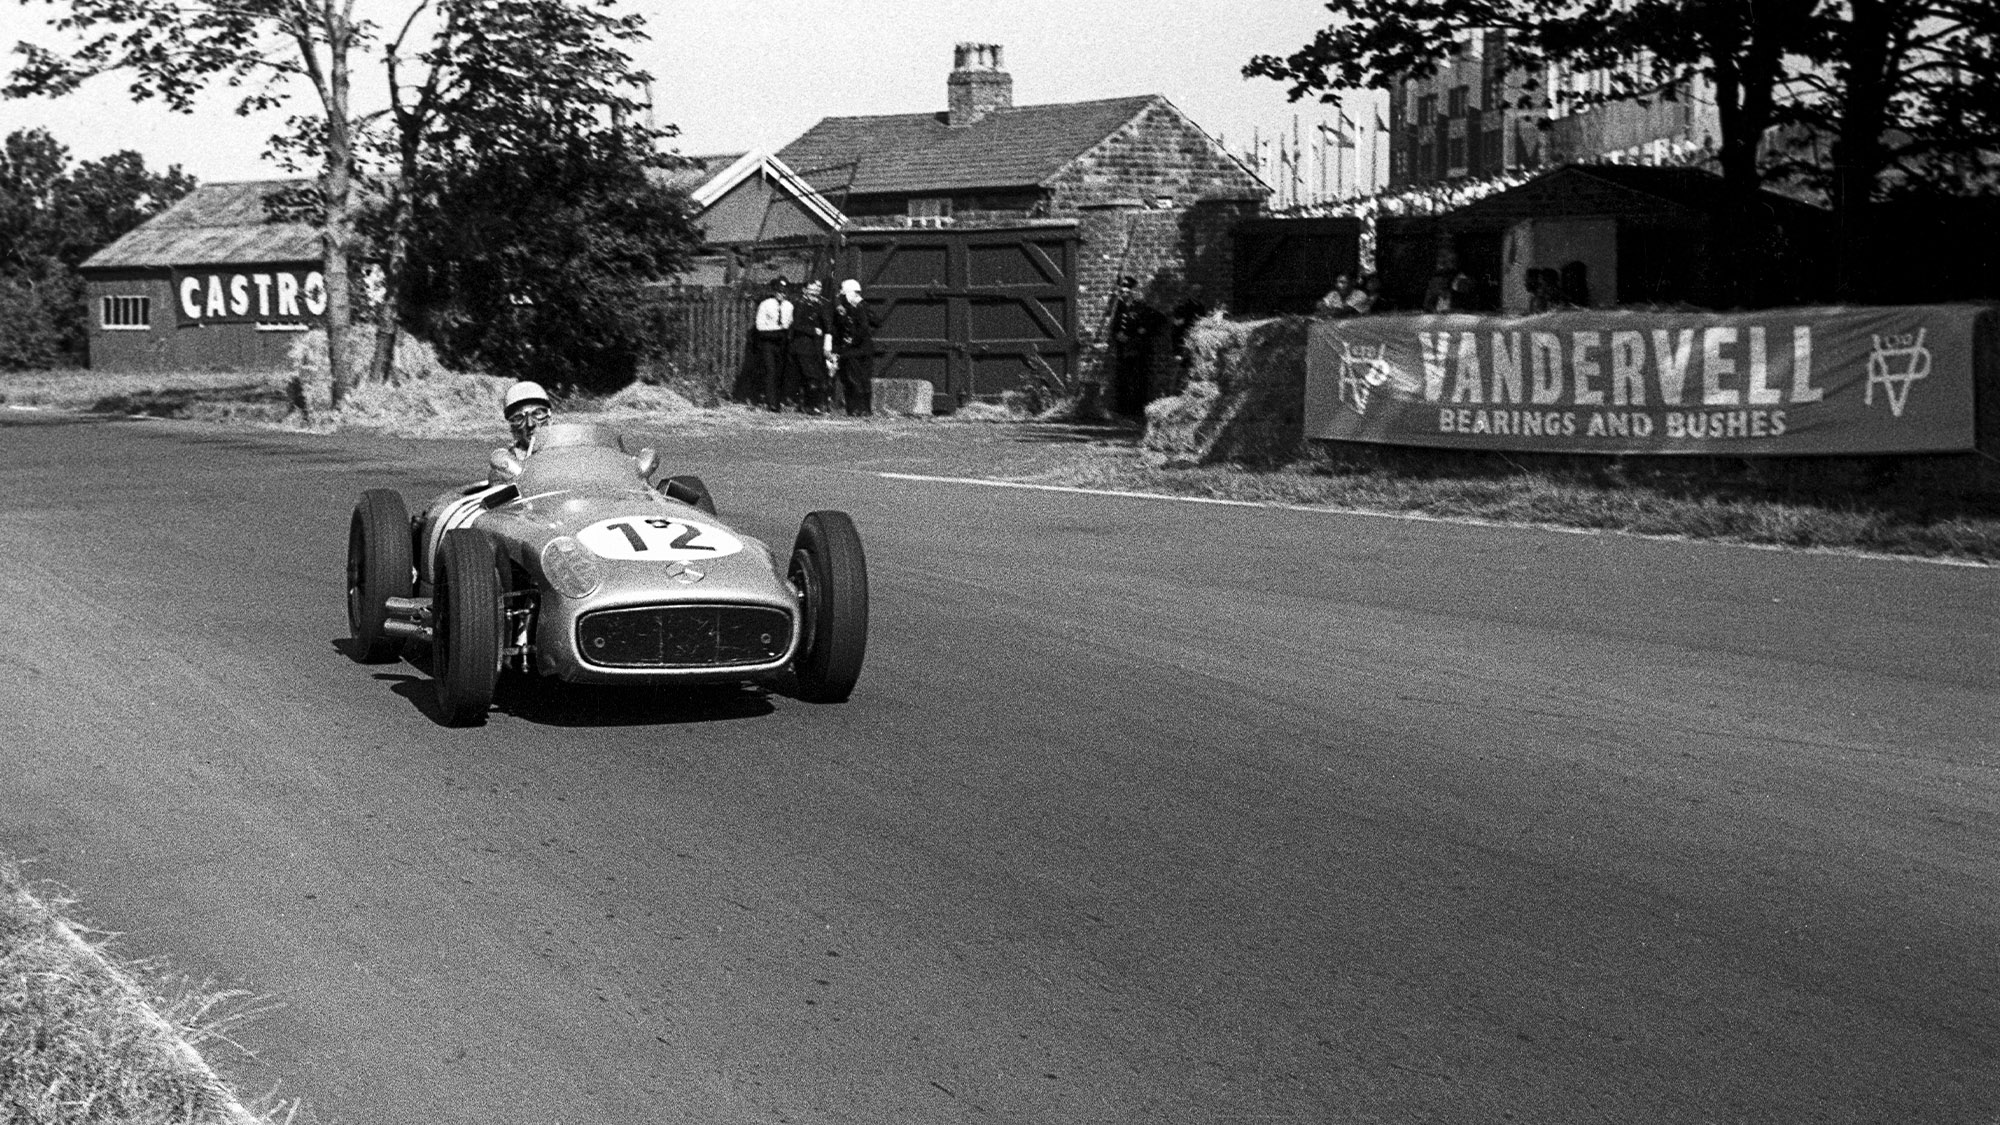 Stirling Moss in his Mercedes W196 R during the 1955 British Grand Prix at Aintree